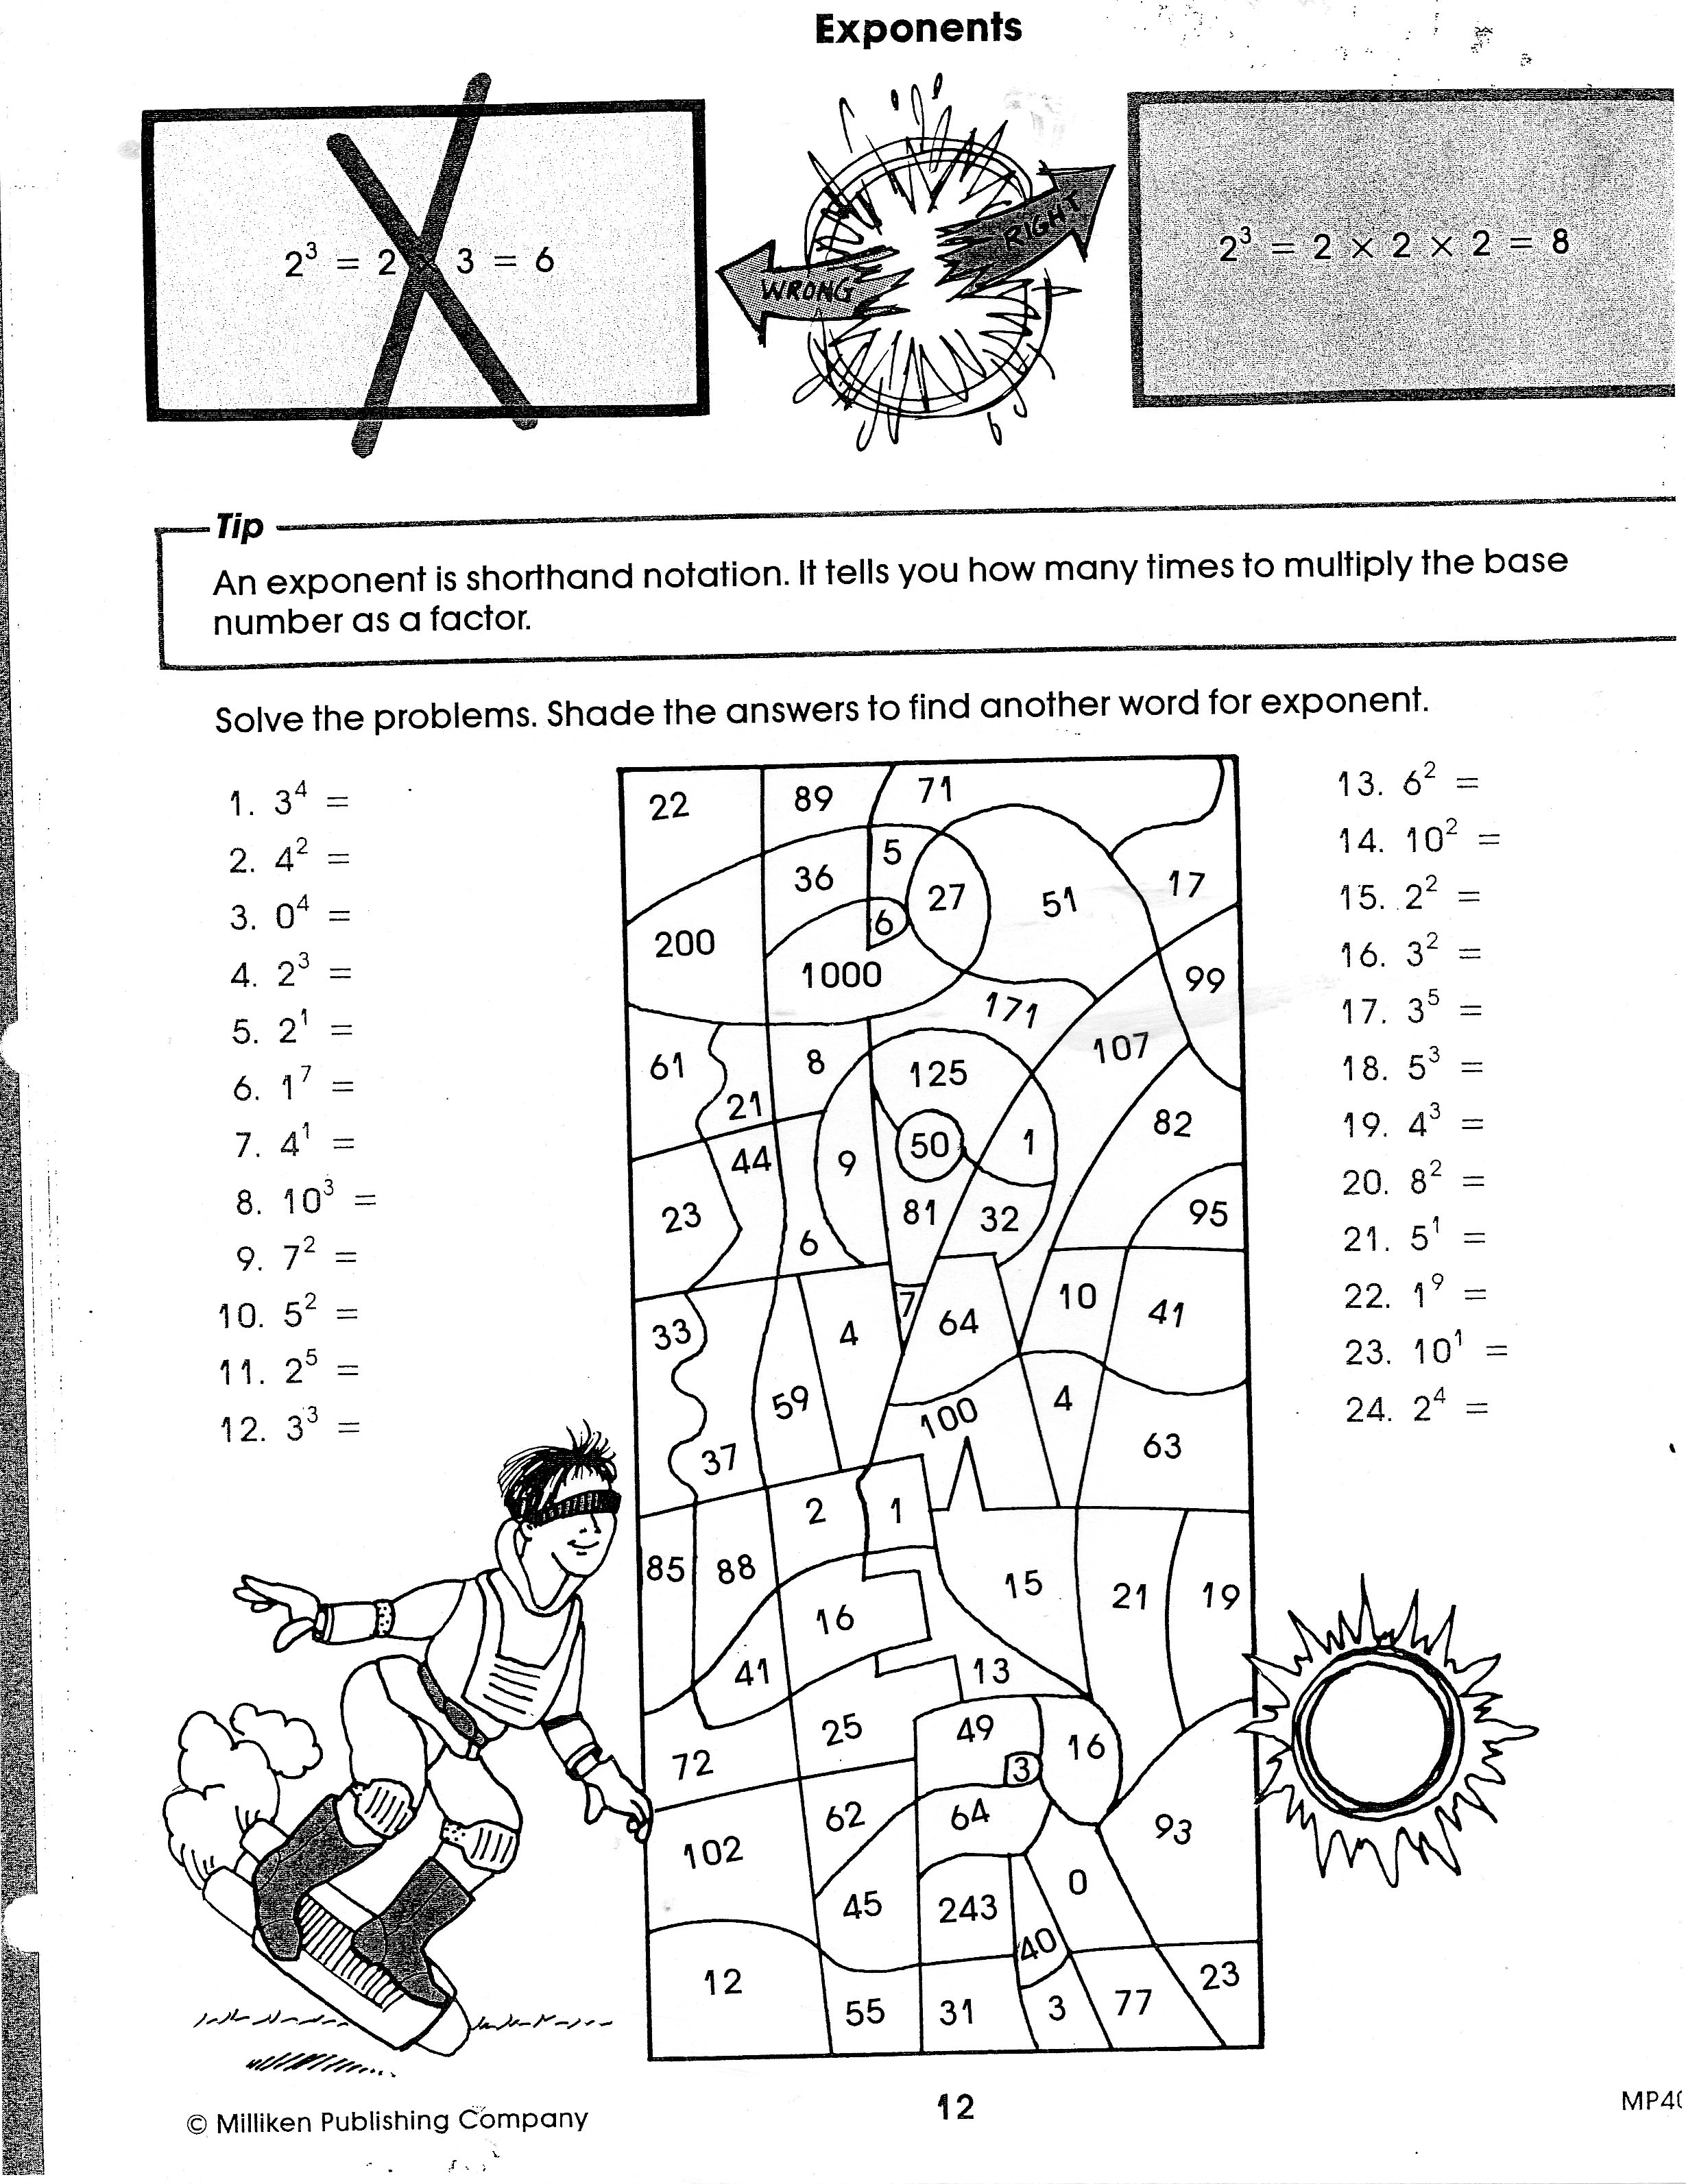 Worksheet On Exponent Laws